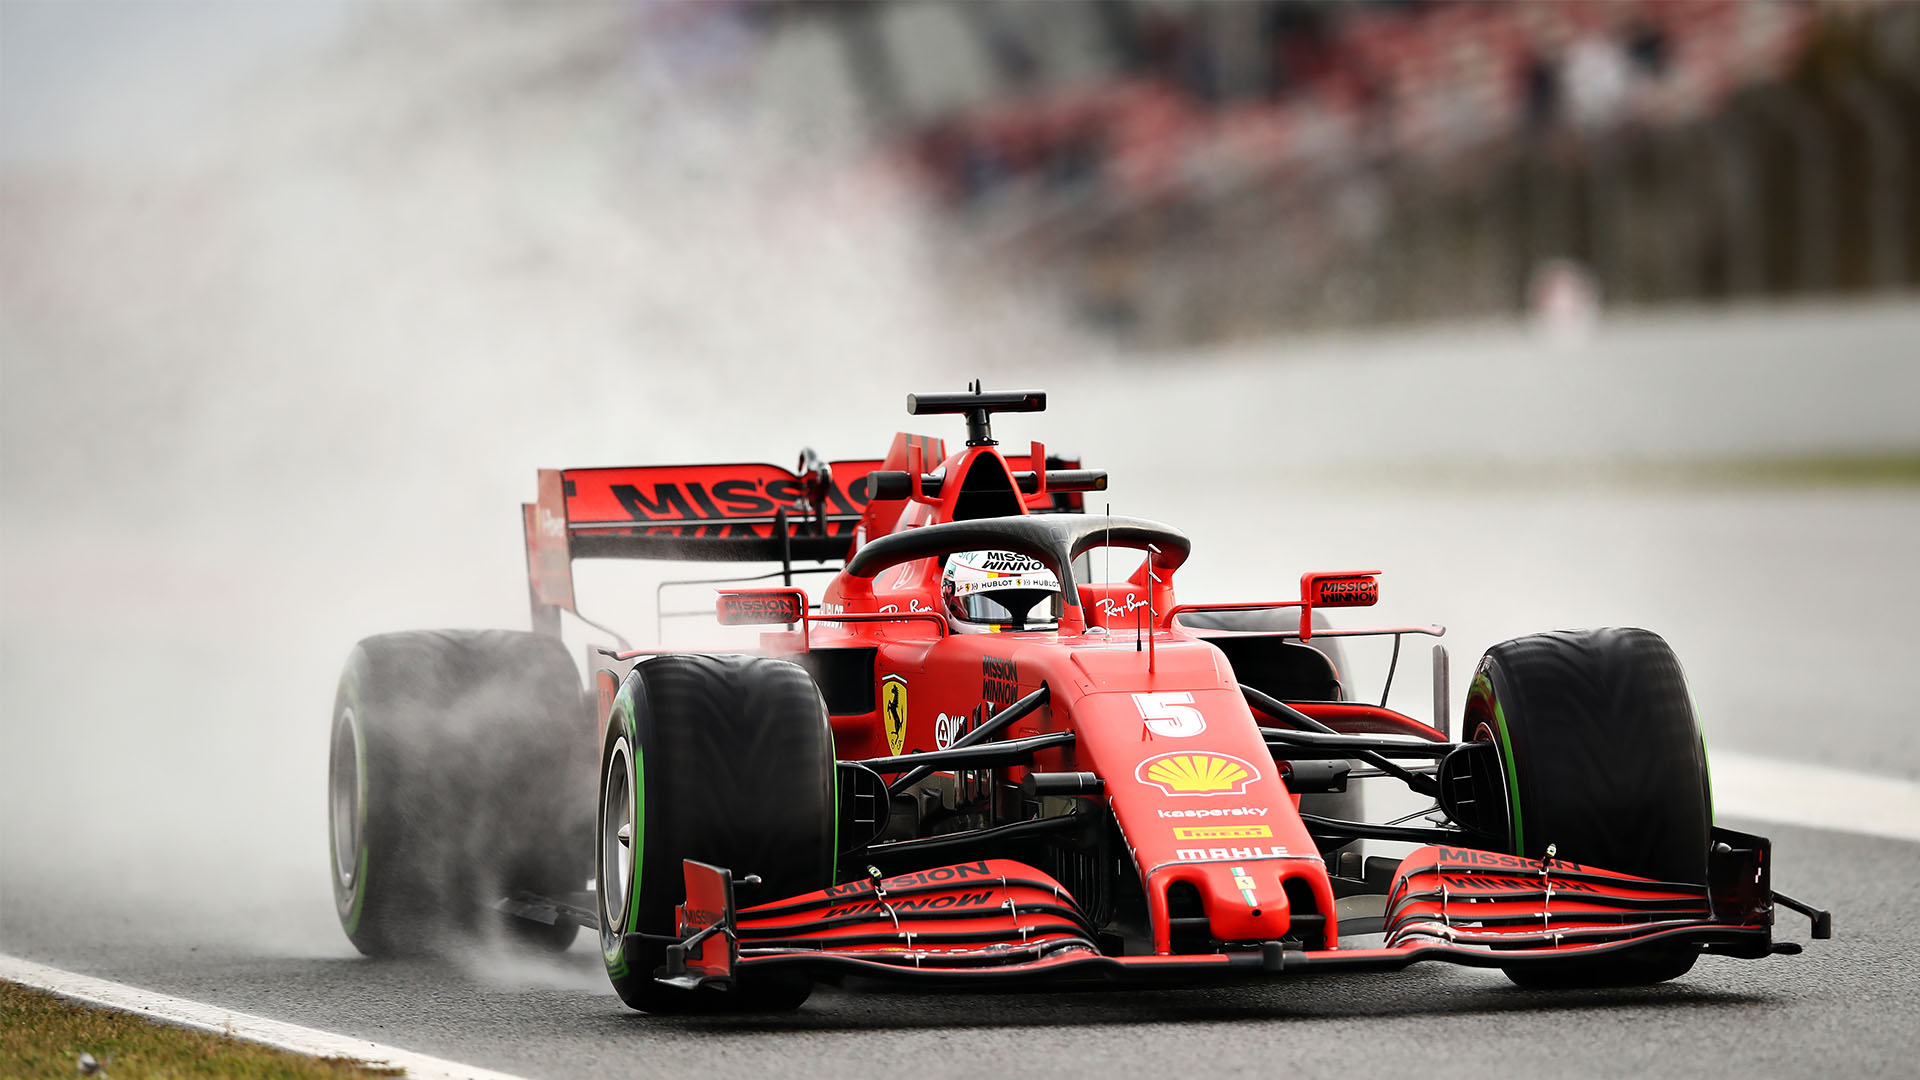 F1 2020 Pre Season Testing Day 2 Week 2 Report And Highlights Vettel Puts Ferrari Top As Verstappen Beaches Red Bull On Second Day Of Week 2 Formula 1